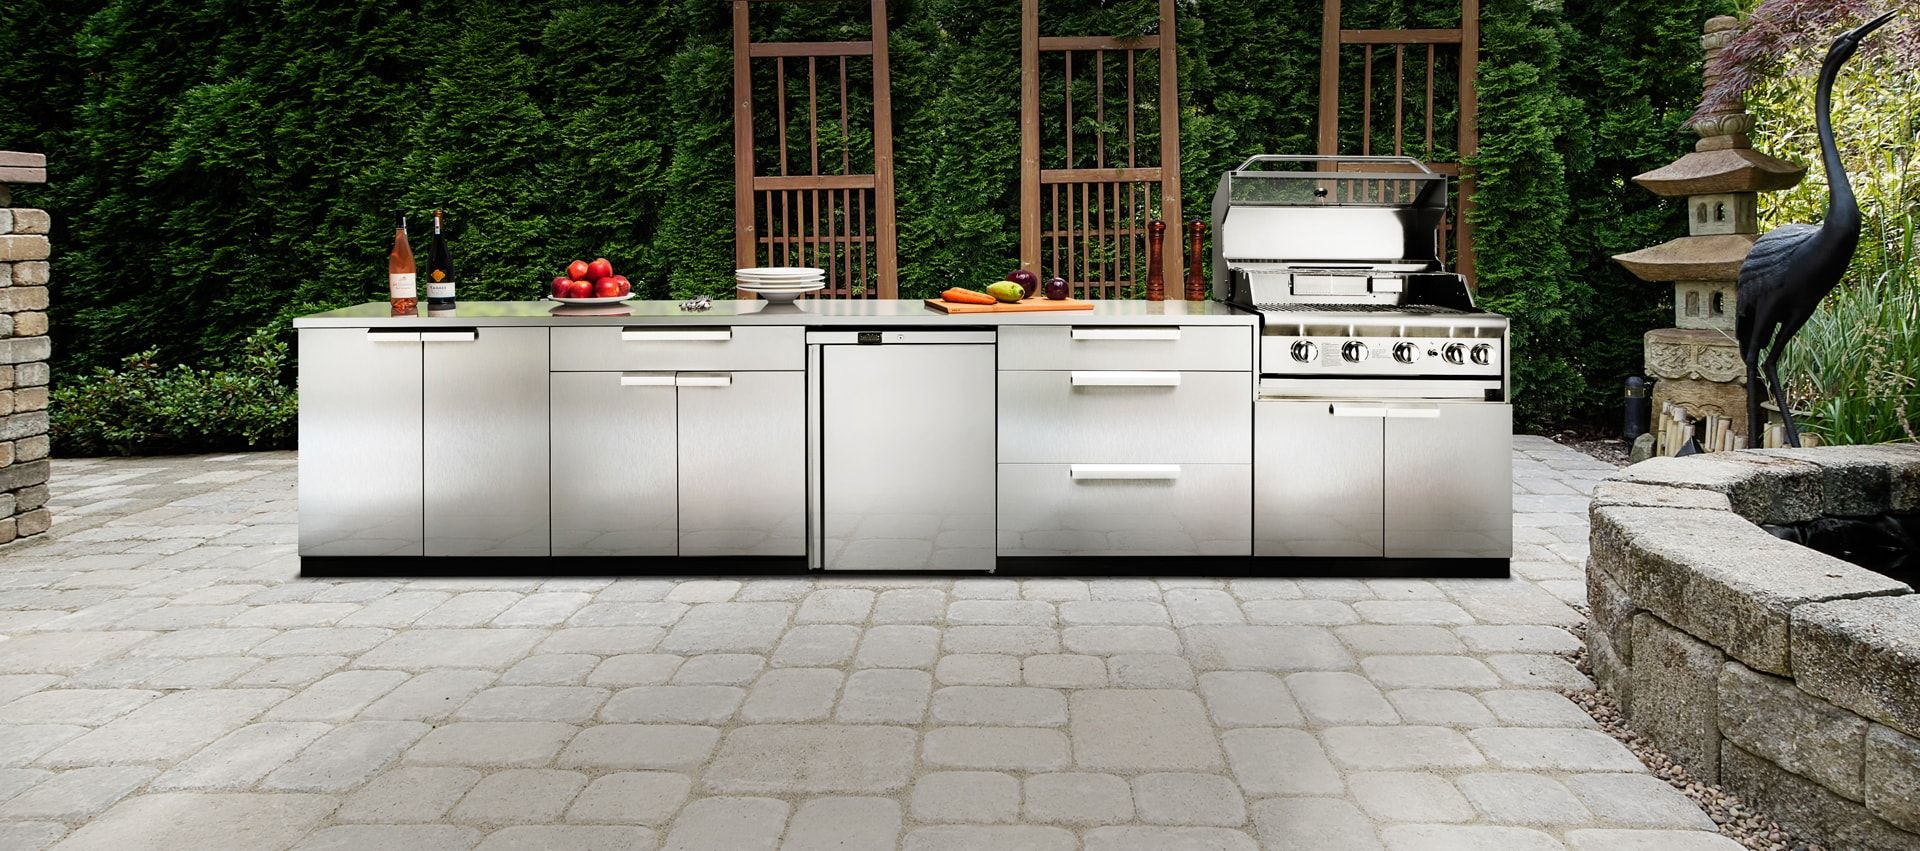 Stainless Steel Stainless Steel Cabinets Outdoor Kitchen Newage Products